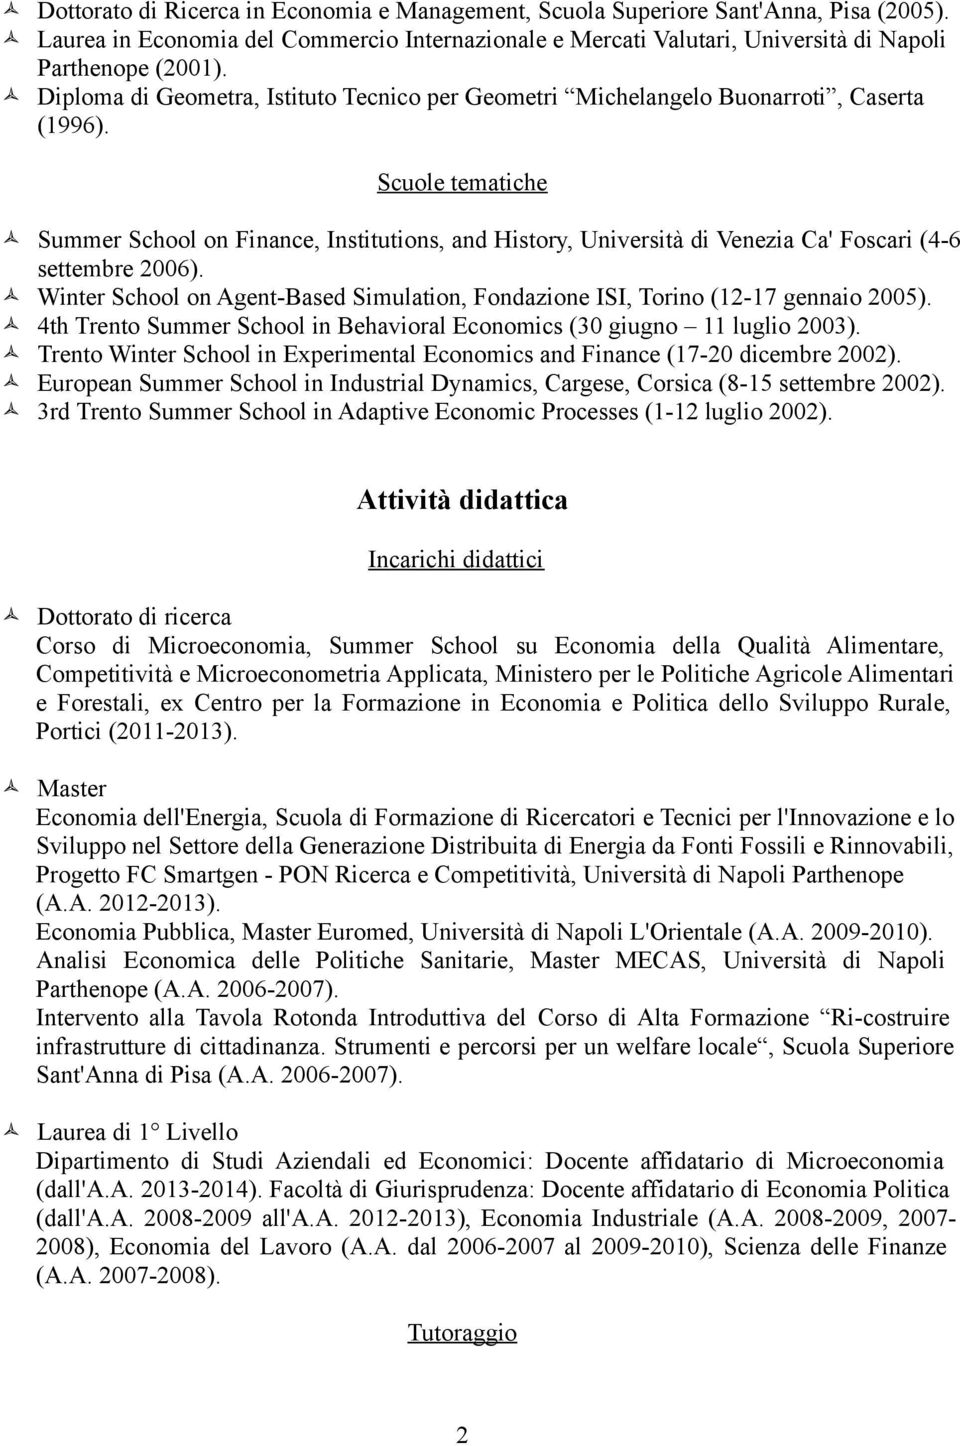 Scuole tematiche Summer School on Finance, Institutions, and History, Università di Venezia Ca' Foscari (4-6 settembre 2006).